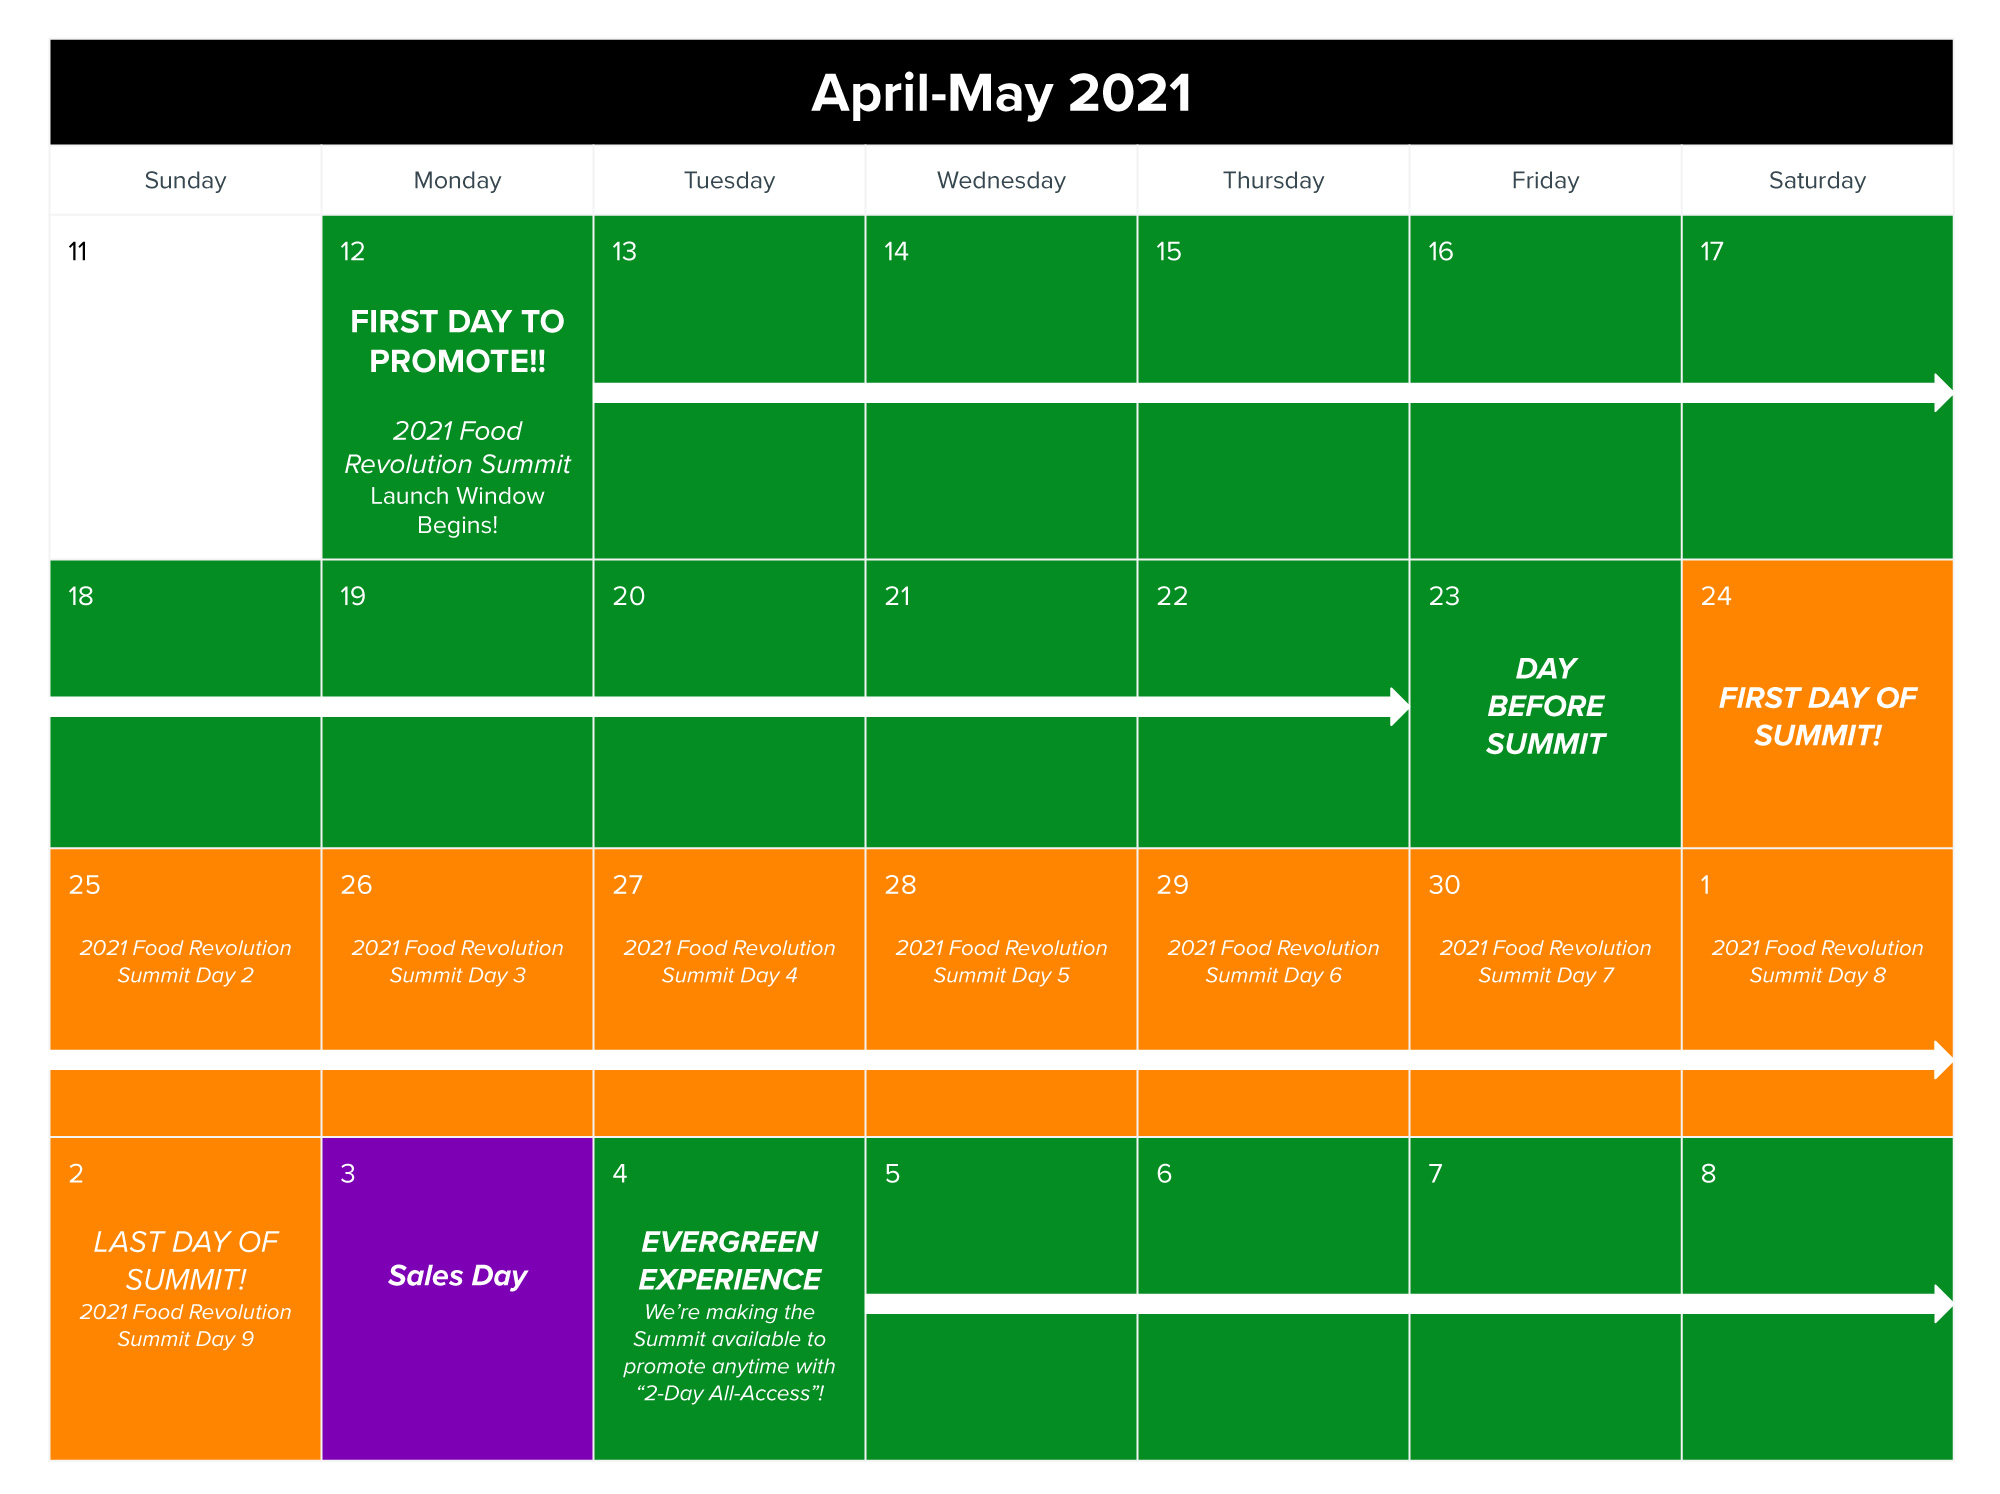 2021 Food Revolution Summit promo calendar